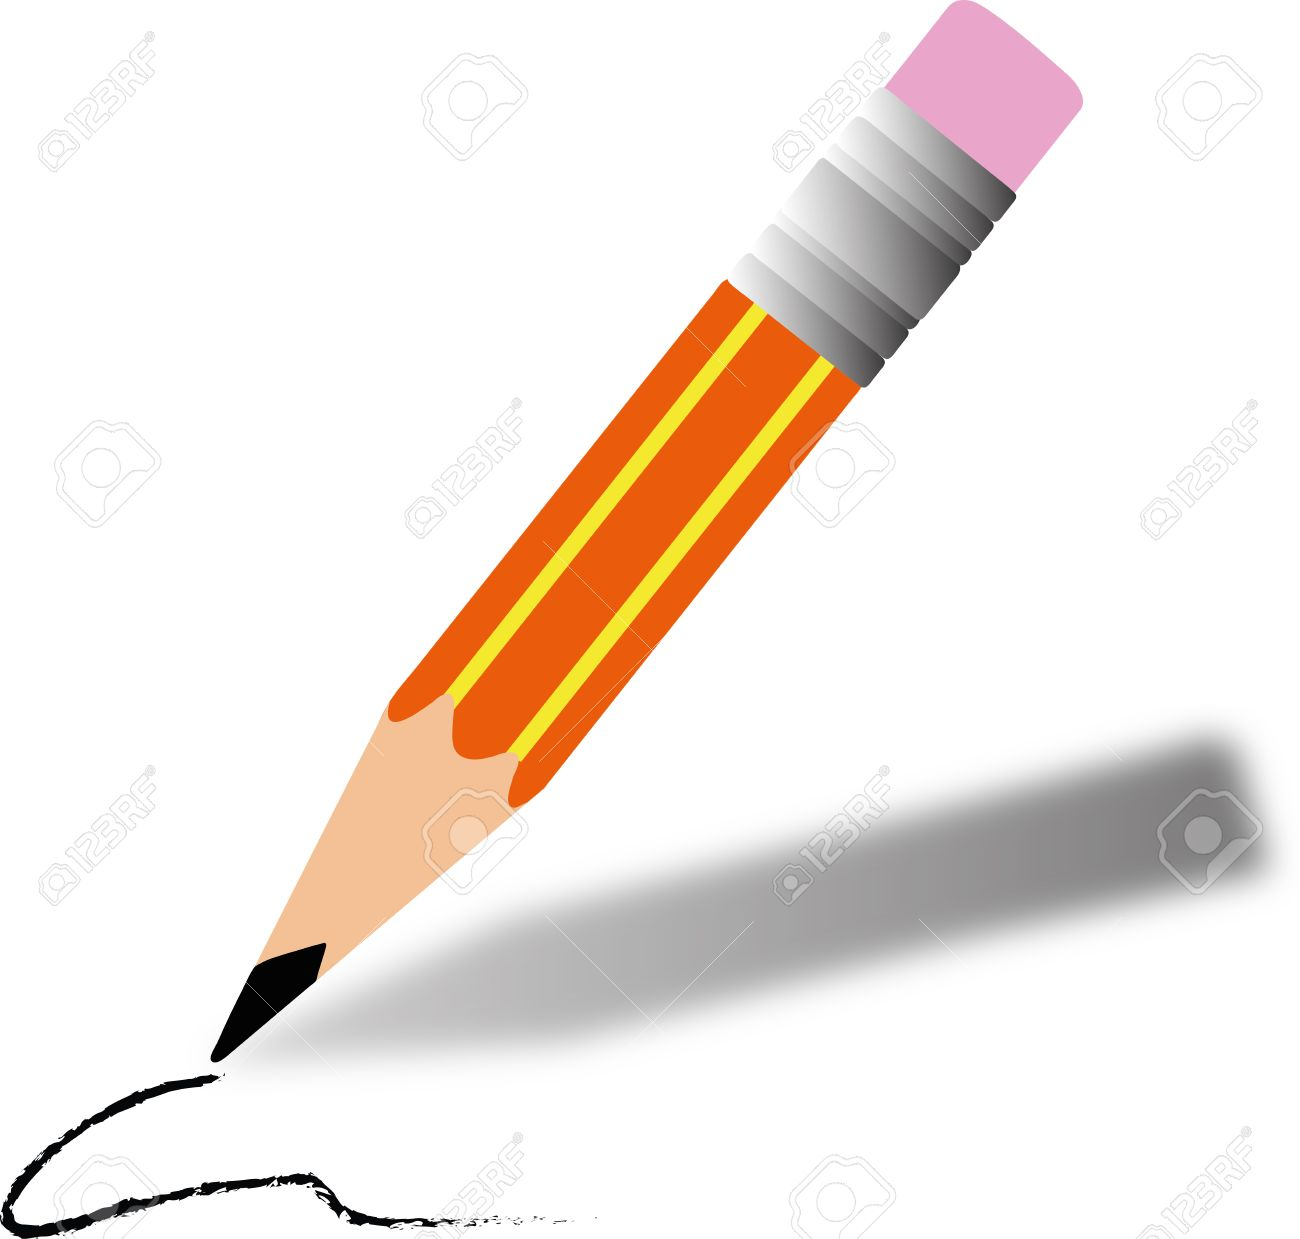 illustration of a cartoon pencil writing royalty free cliparts vectors and stock illustration image 33764977